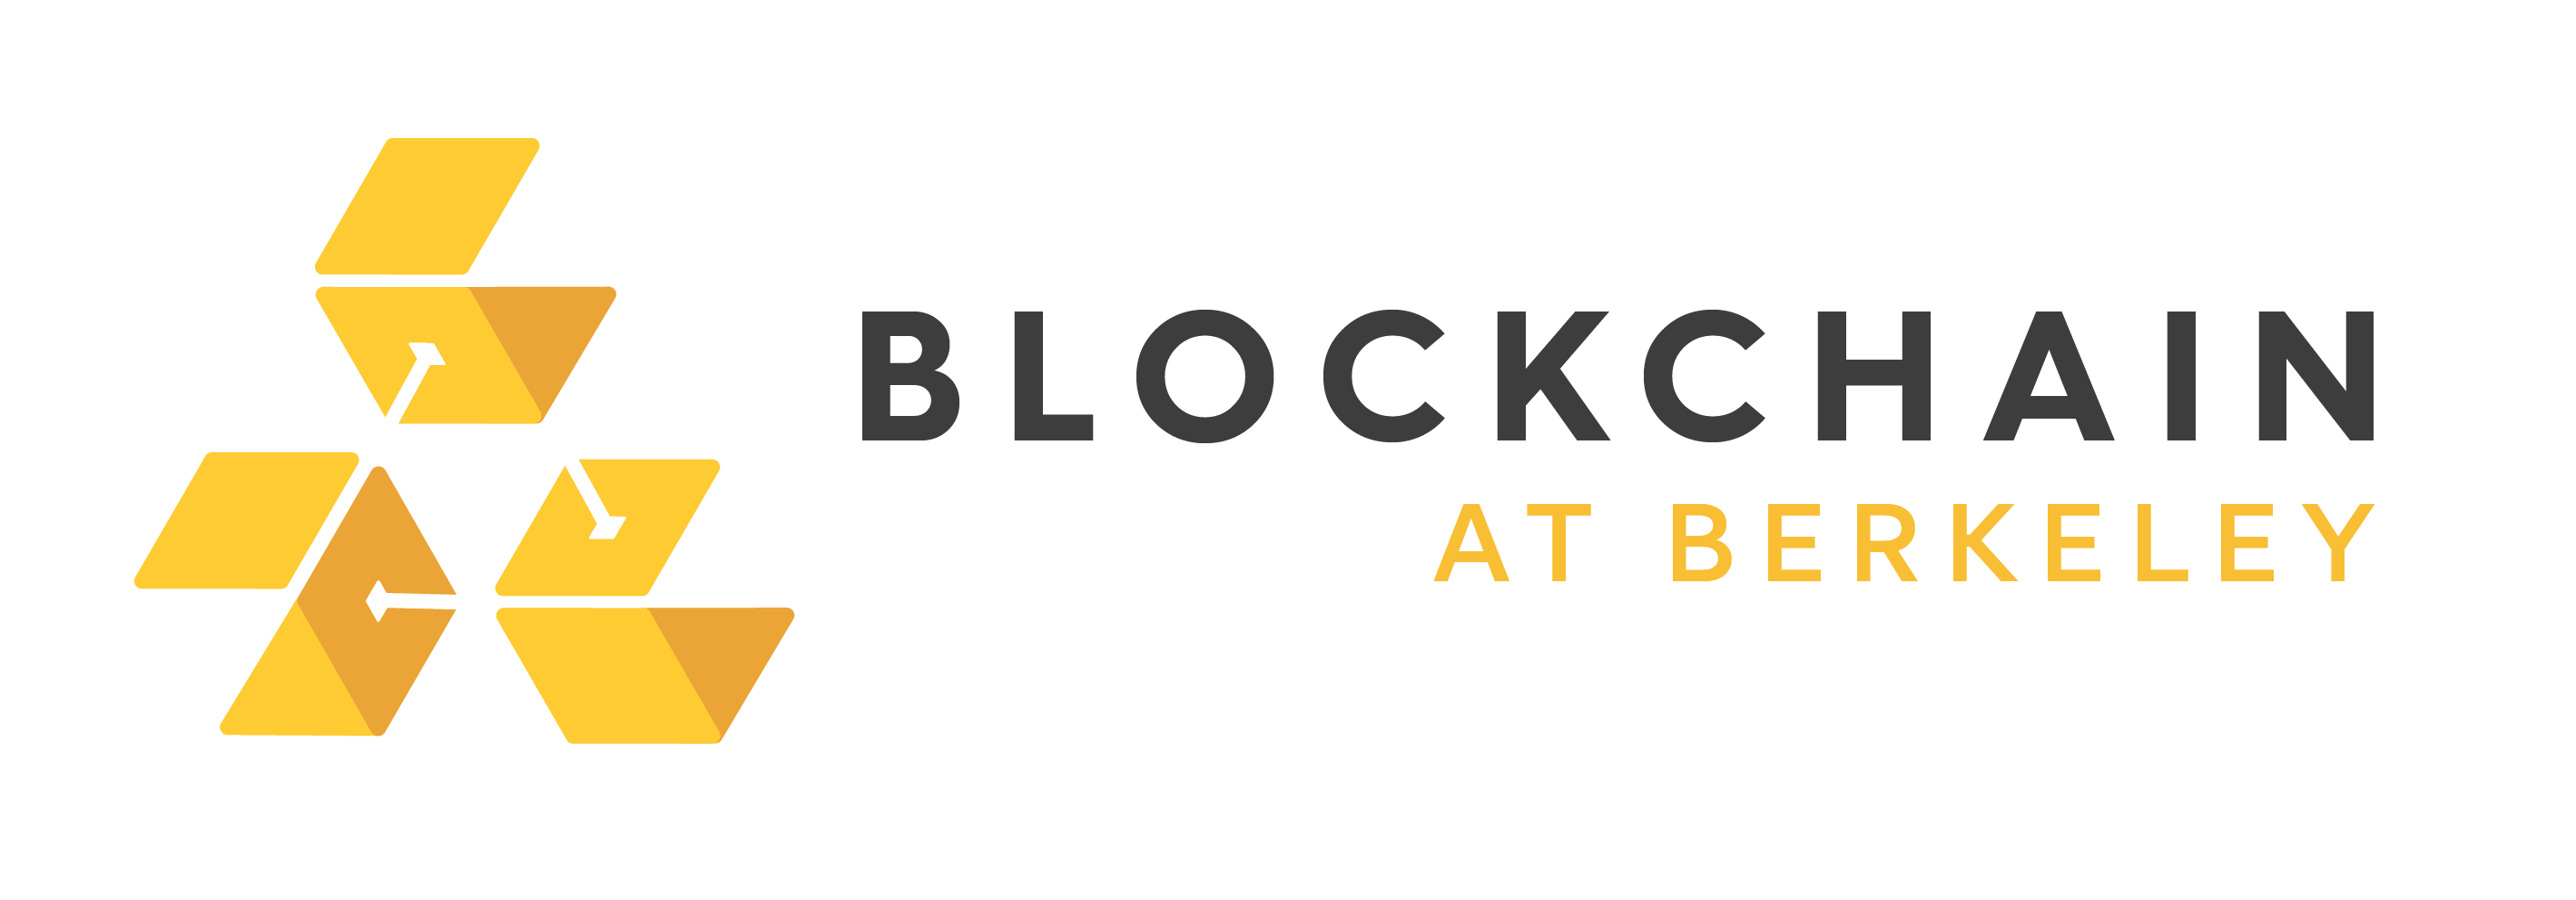 blockchain at berkeley logo